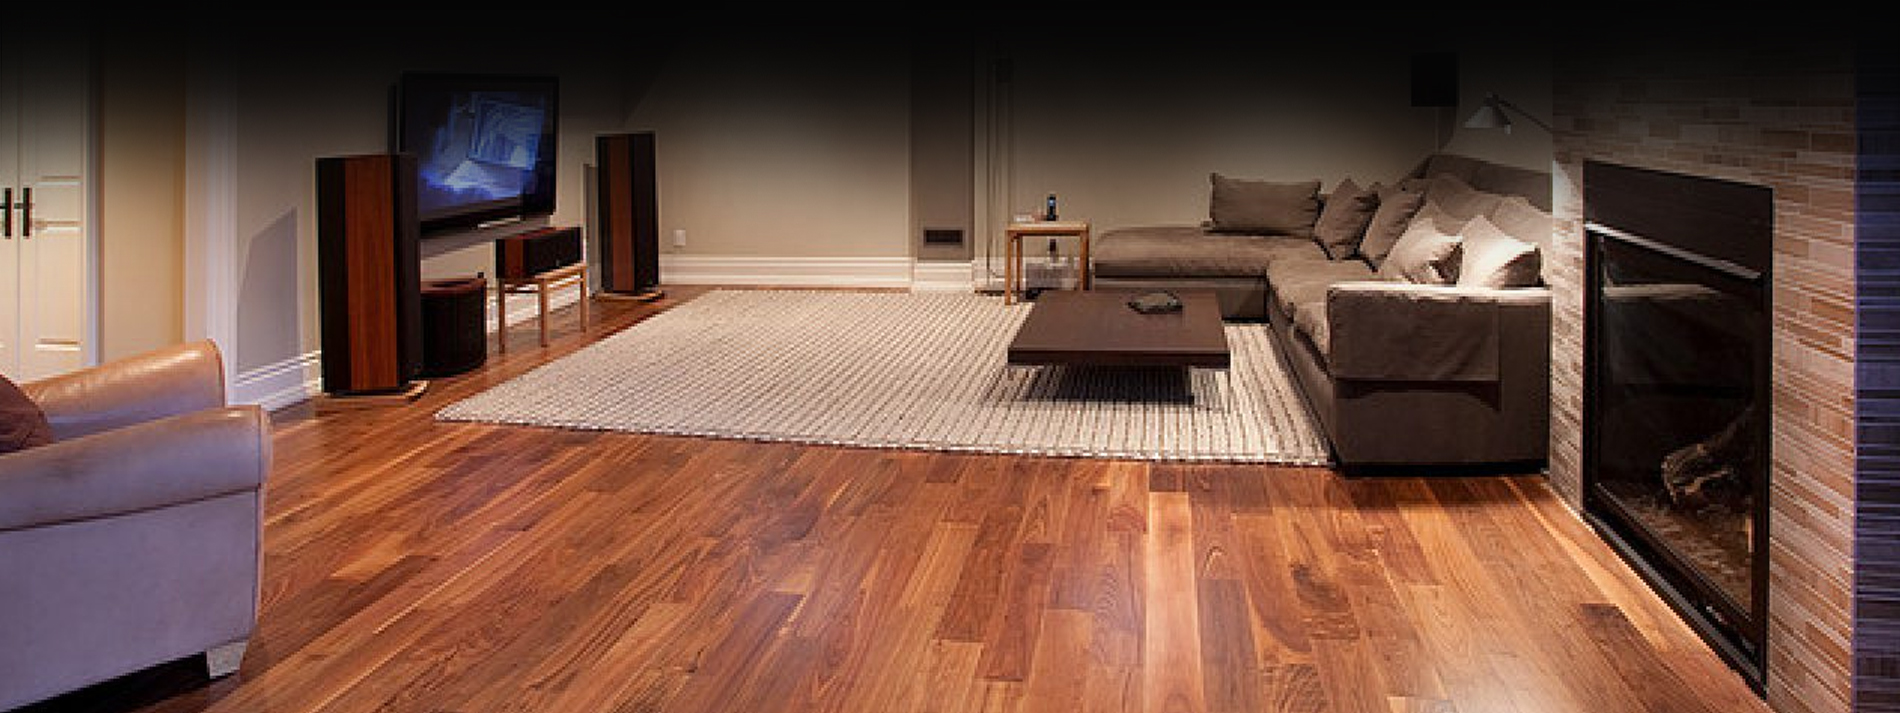 Eglinton carpets laminate flooring toronto laminate for Laminate flooring york